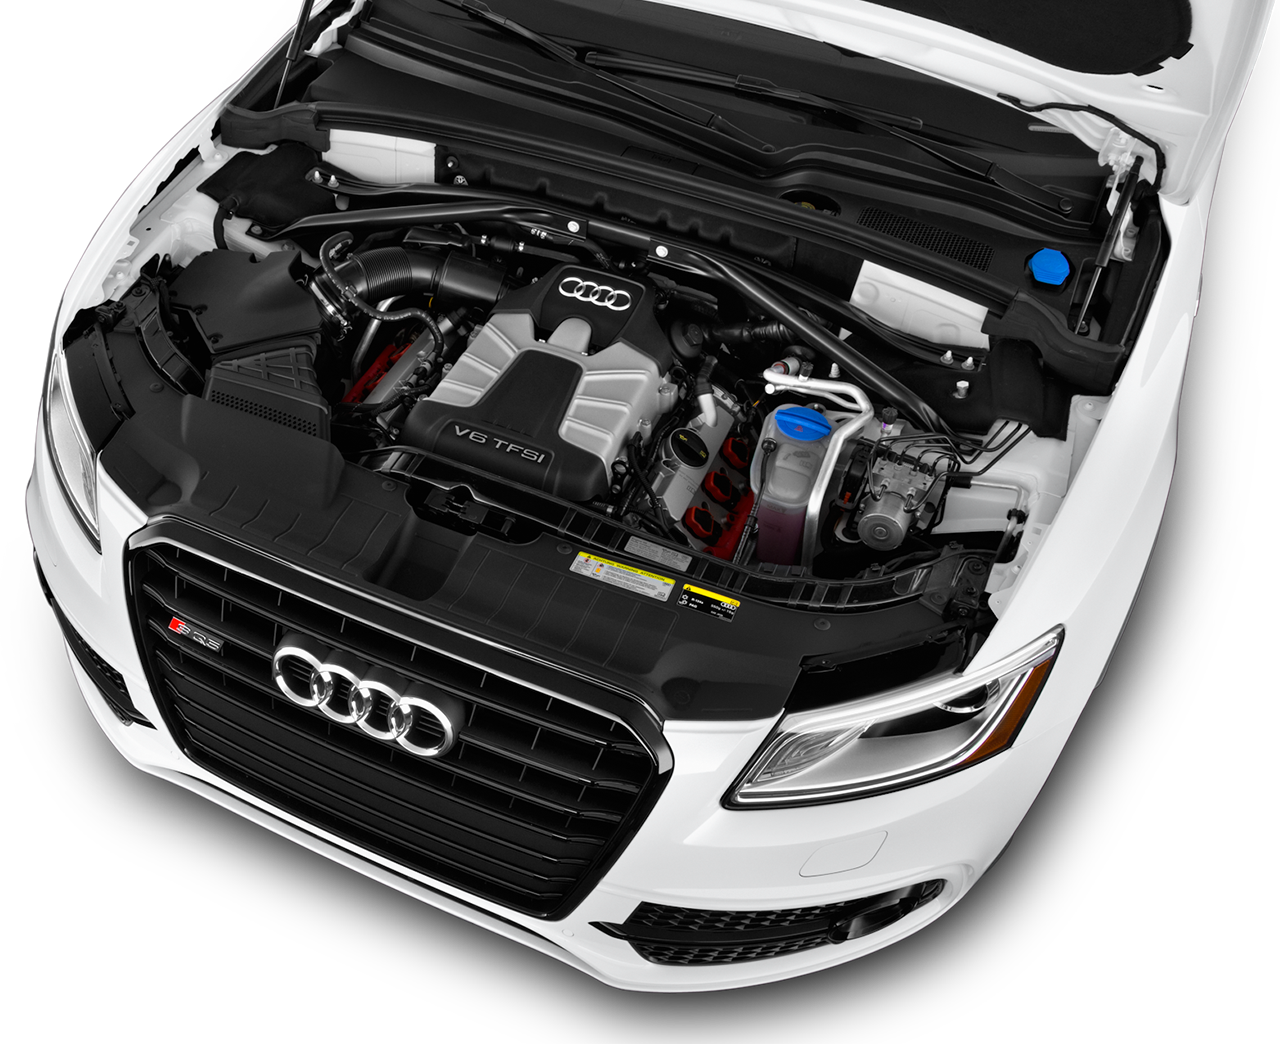 Revival Remaps Mobile ECU Remapping